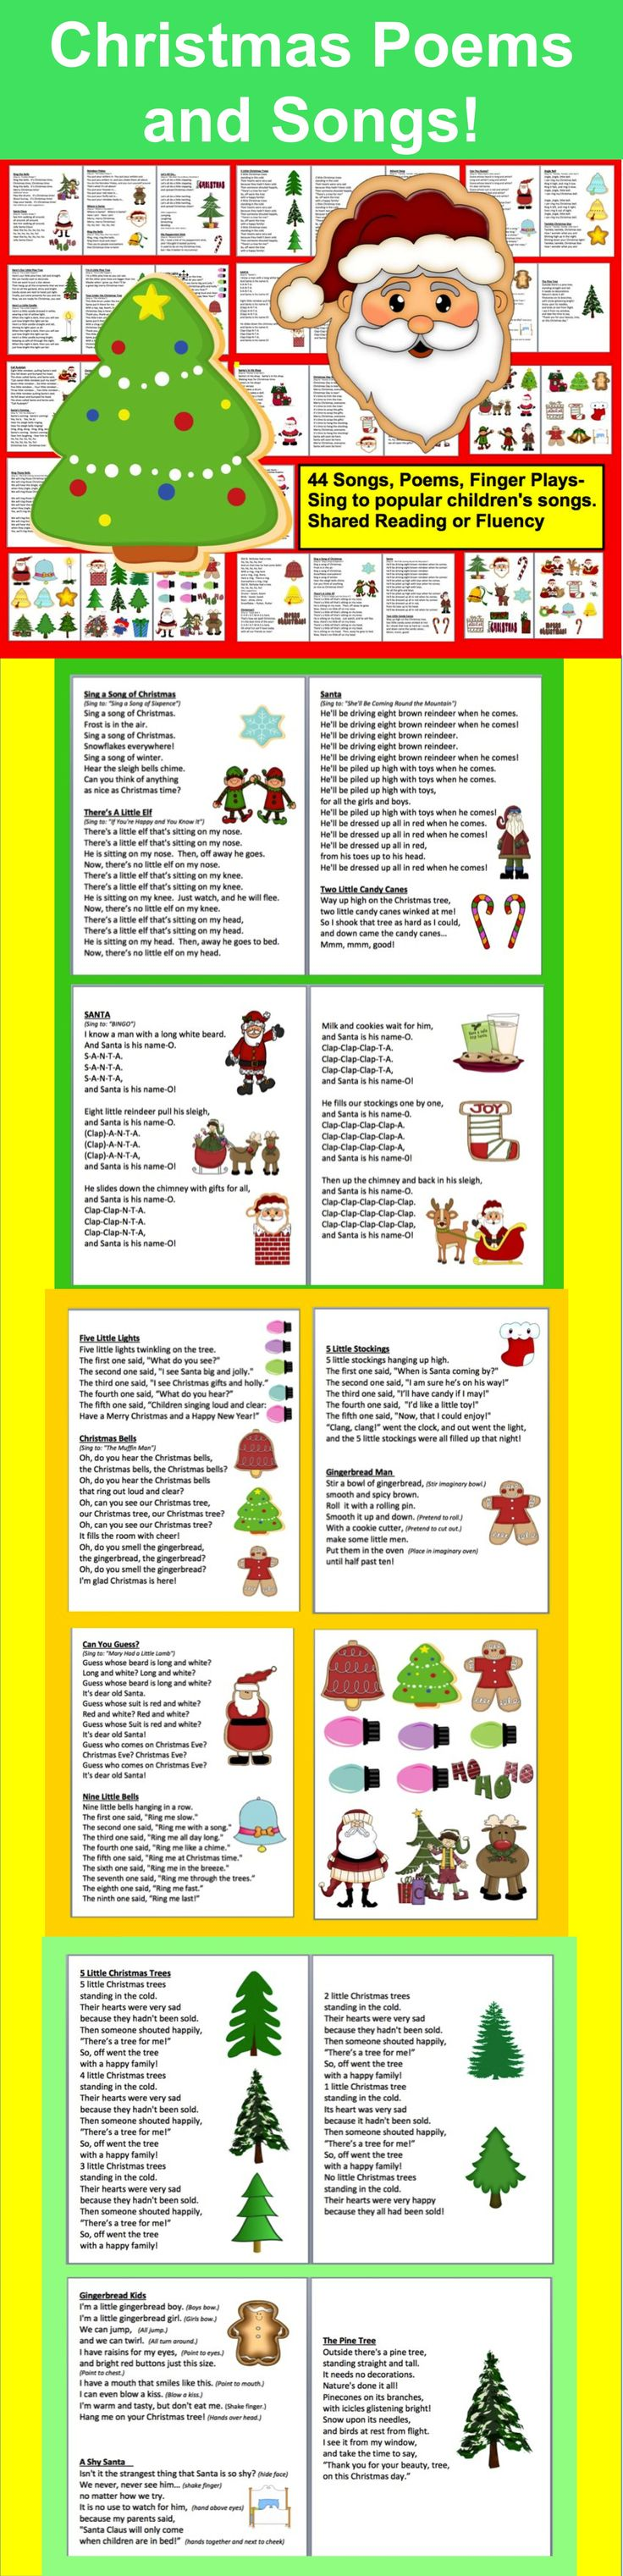 $3.00 Christmas Poems/Songs/Finger Plays and Chants –  36 page file –  All Illustrated with Christmas Graphics- 46 Songs/Poems/Finger Plays and Chants- Prints nicely in color or grayscale- Just choose those you like, and print just those pages.